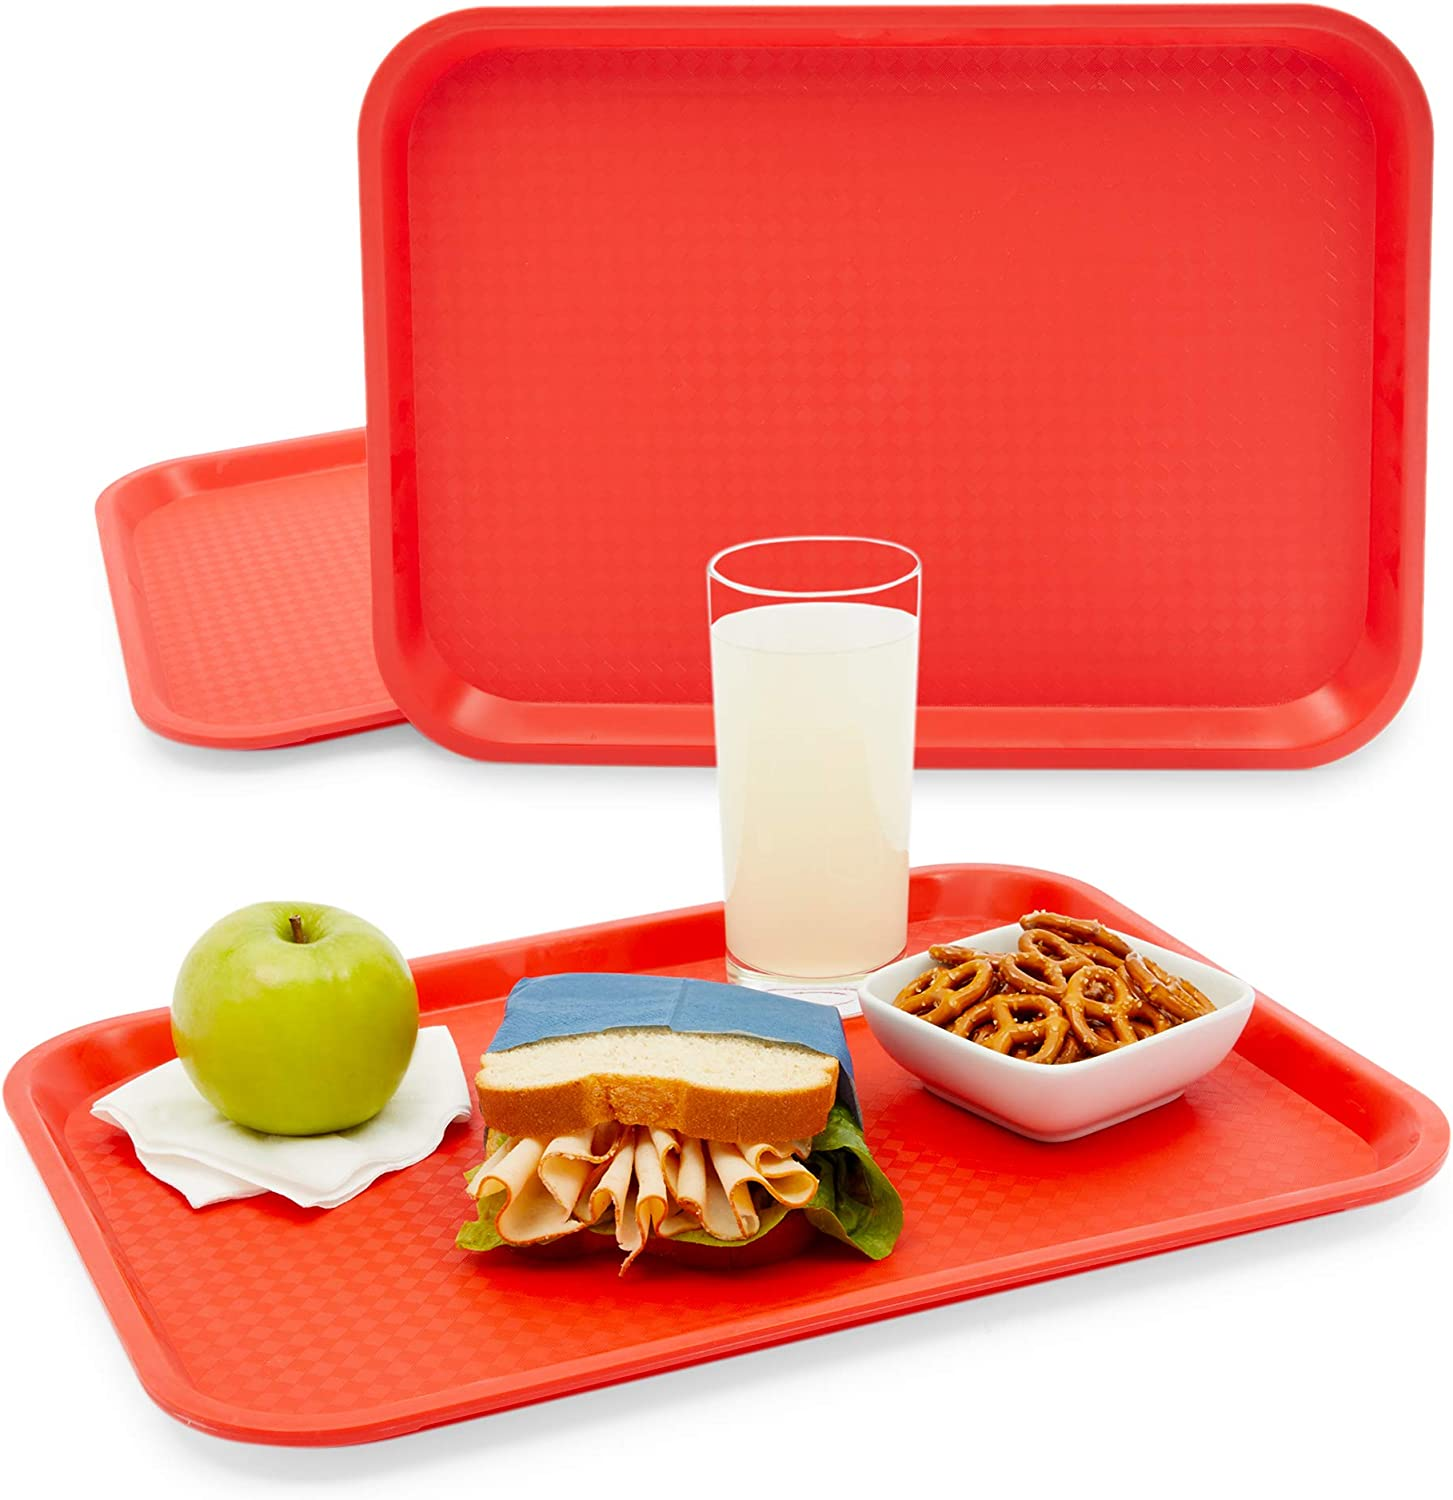 Red Plastic Serving Trays, Cafeteria Food Server (16 x 12 In, 2 Pack)